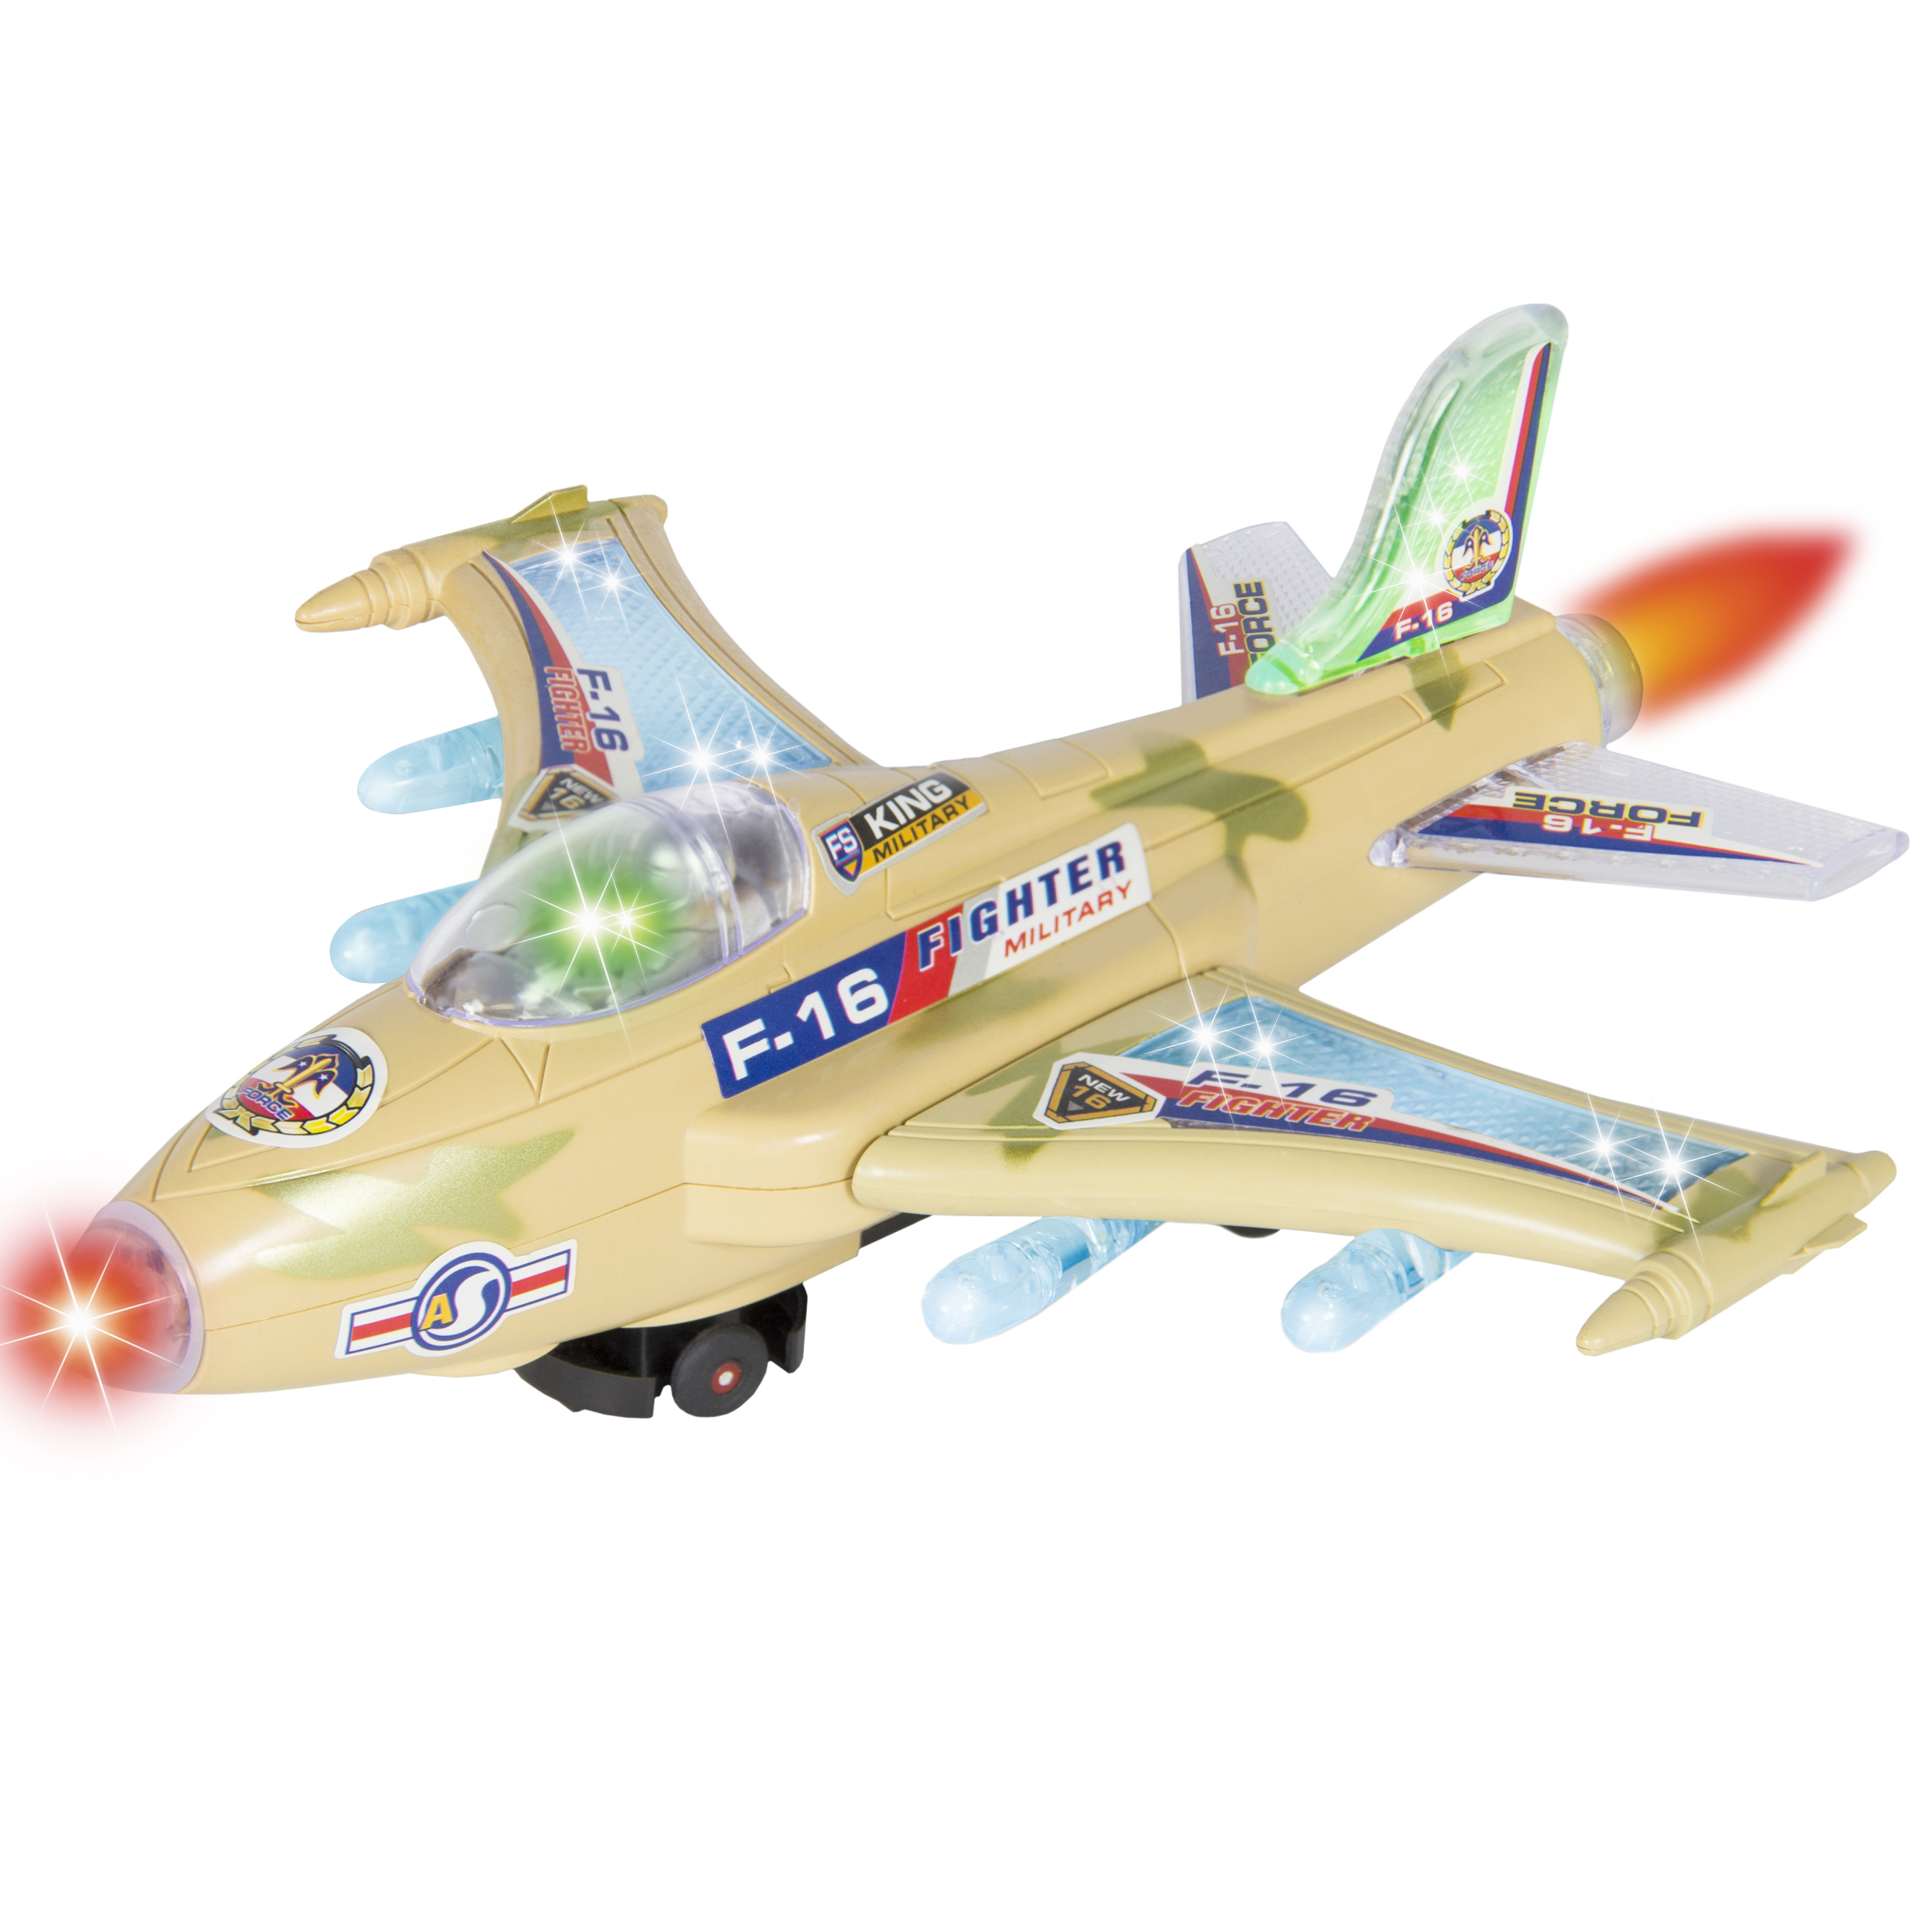 Kids Toy F-16 Figher Jet Airplane, Flashing Lights and Sound, Bump and Go Action